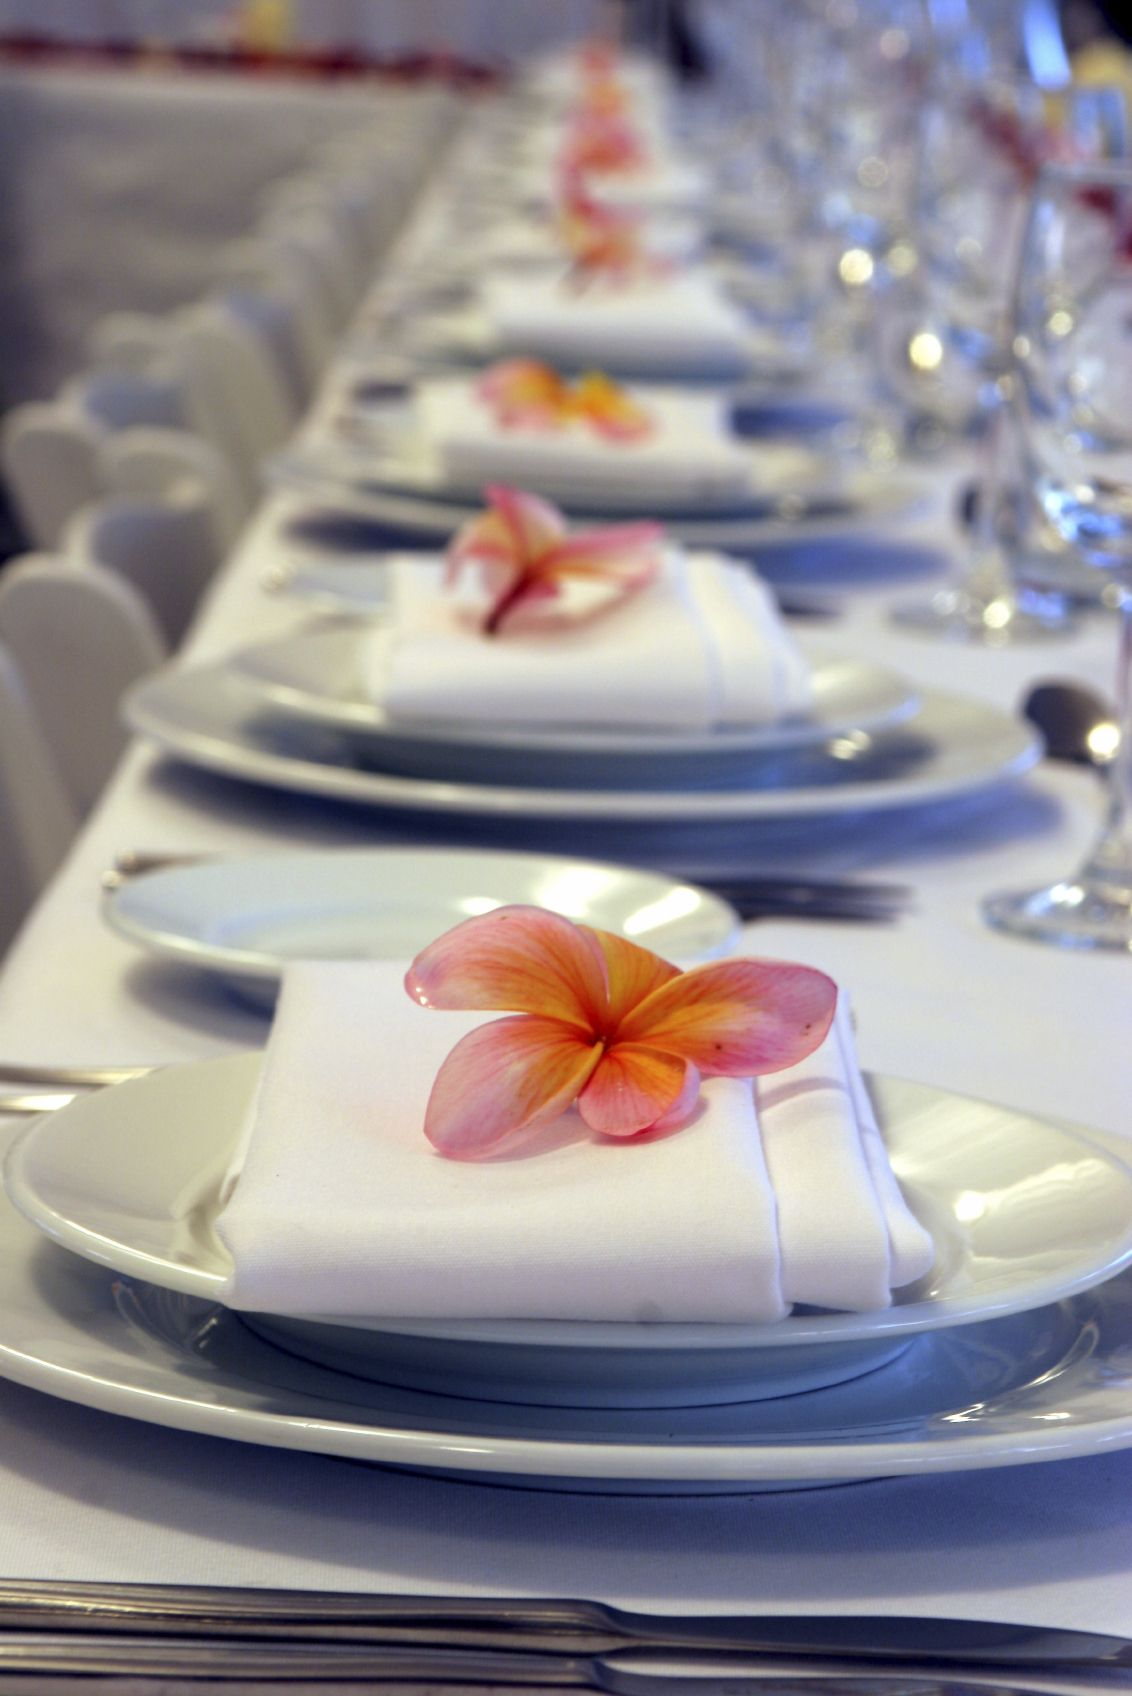 Simple wedding decoration ideas for reception  flowers on every napkin  simple wedding favordecoration in